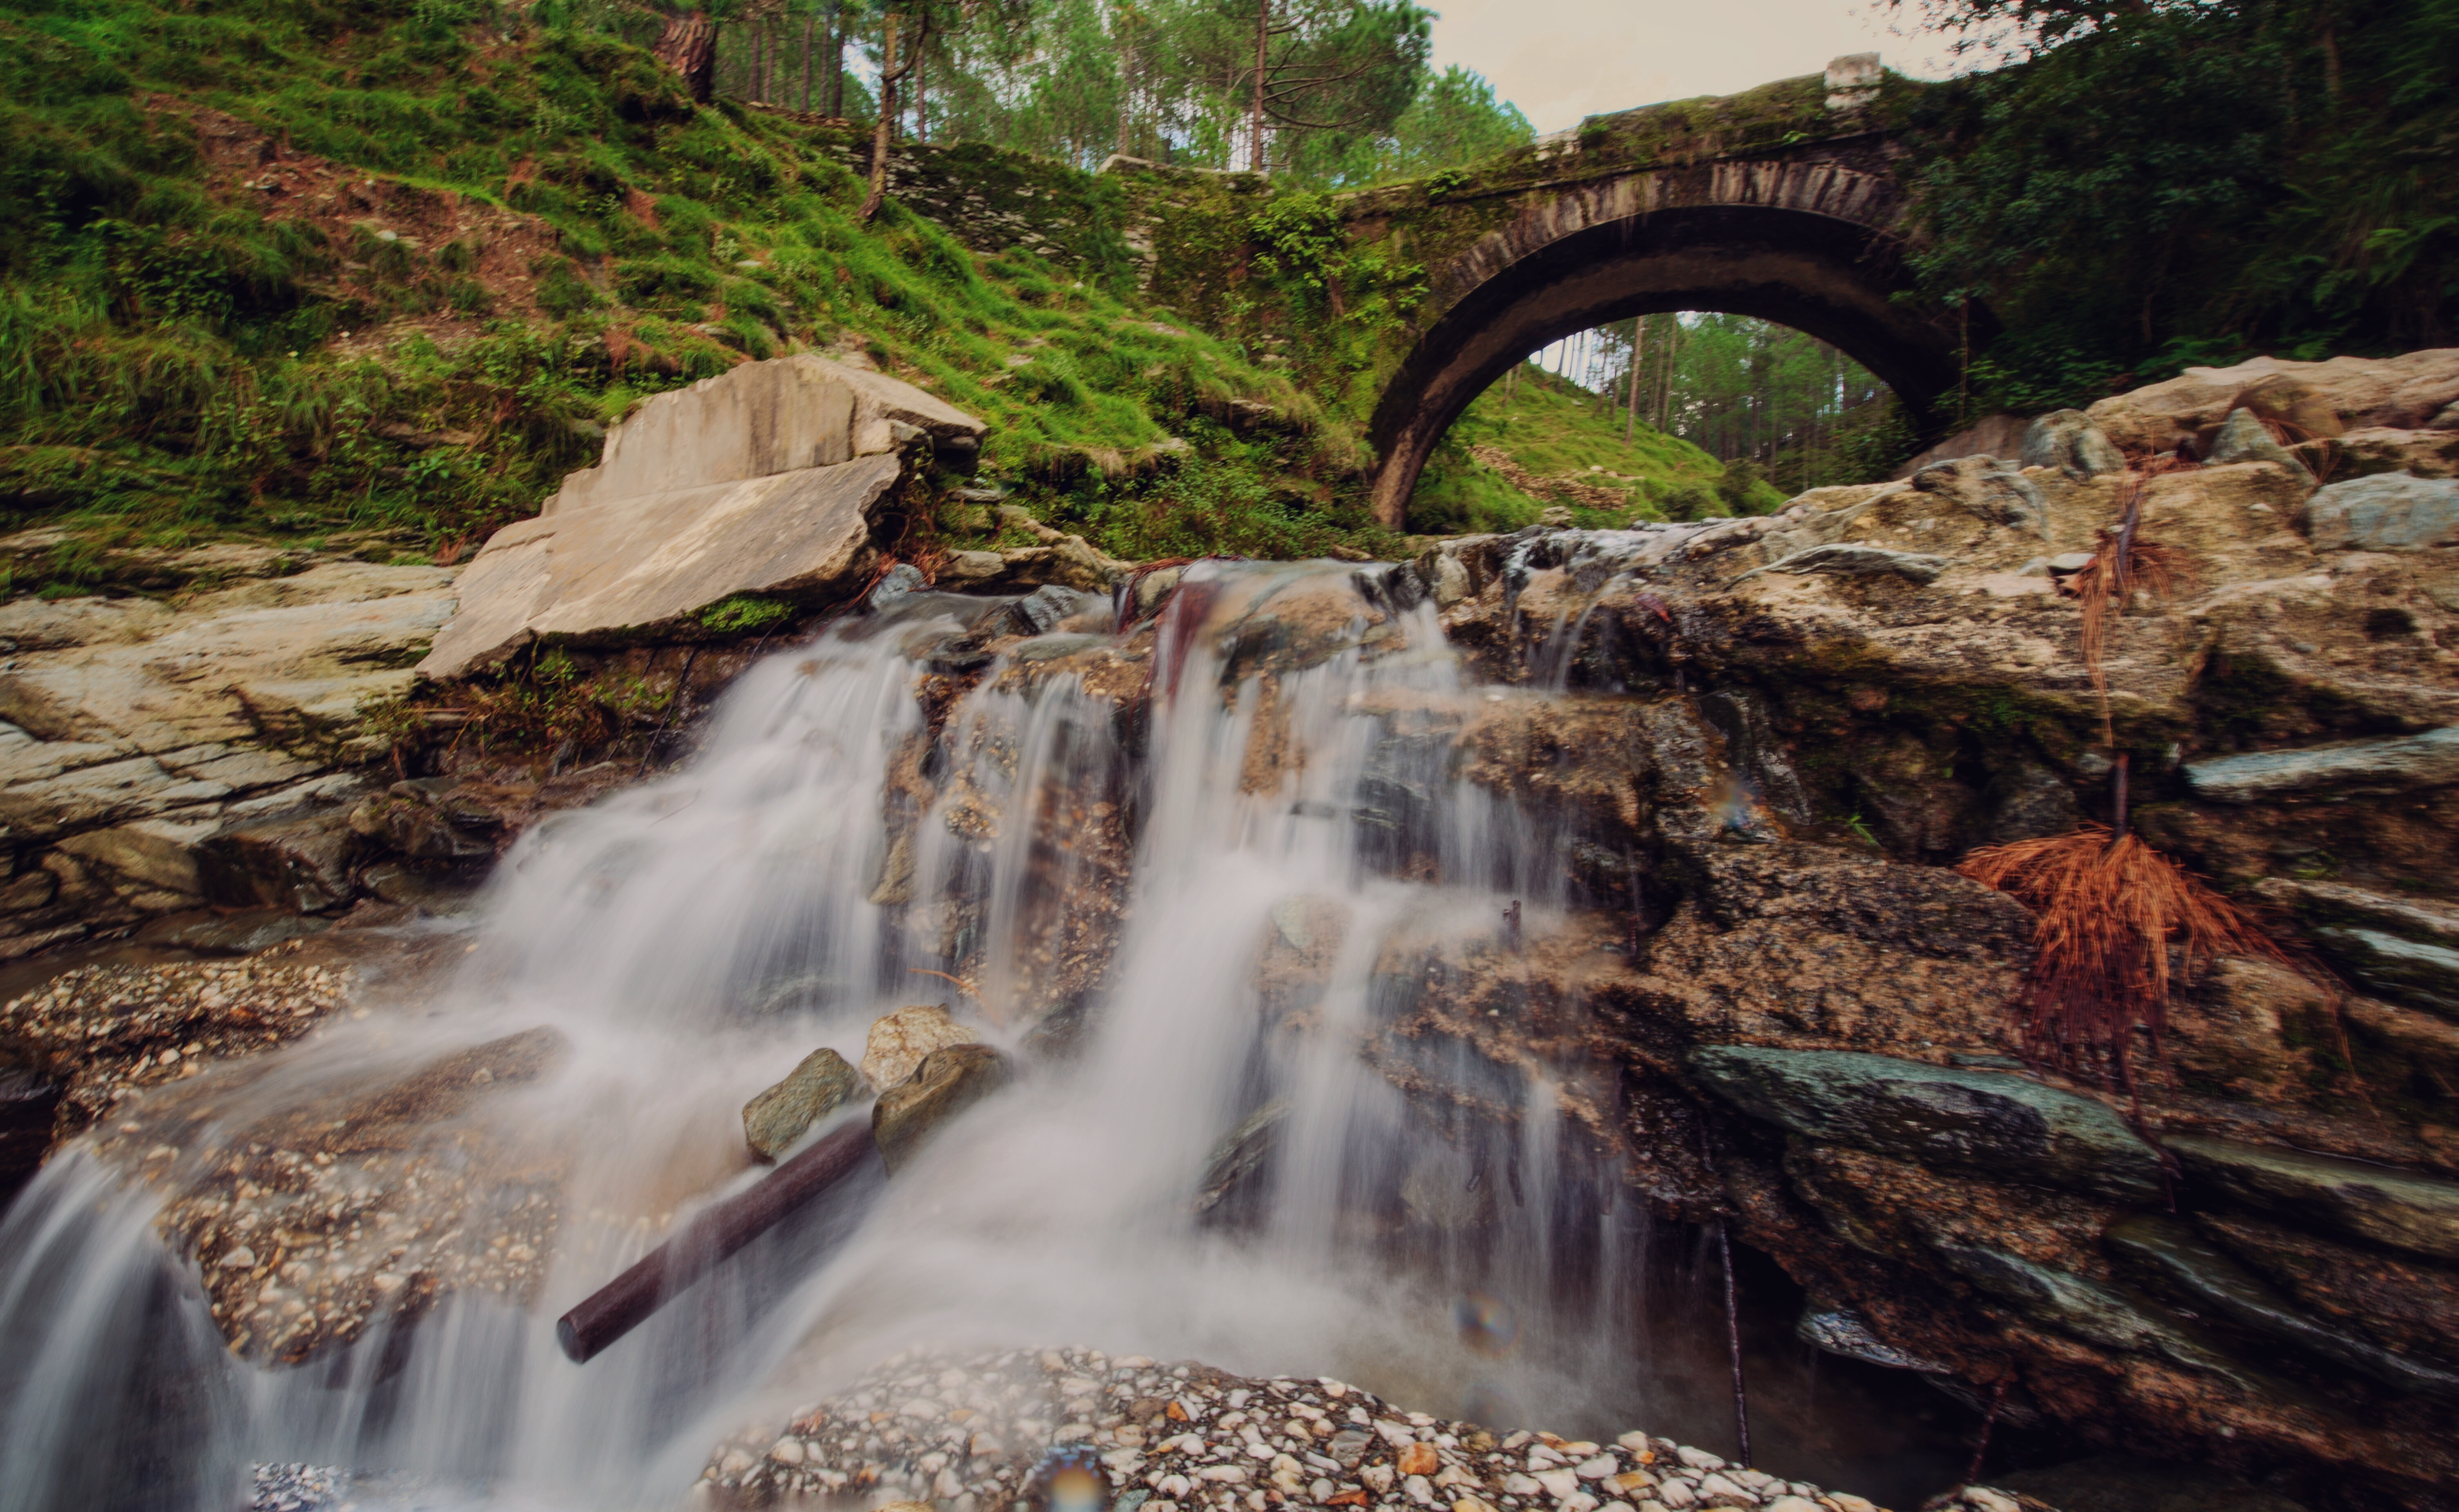 Misty waterfalls rush down cascading rocks in the woods